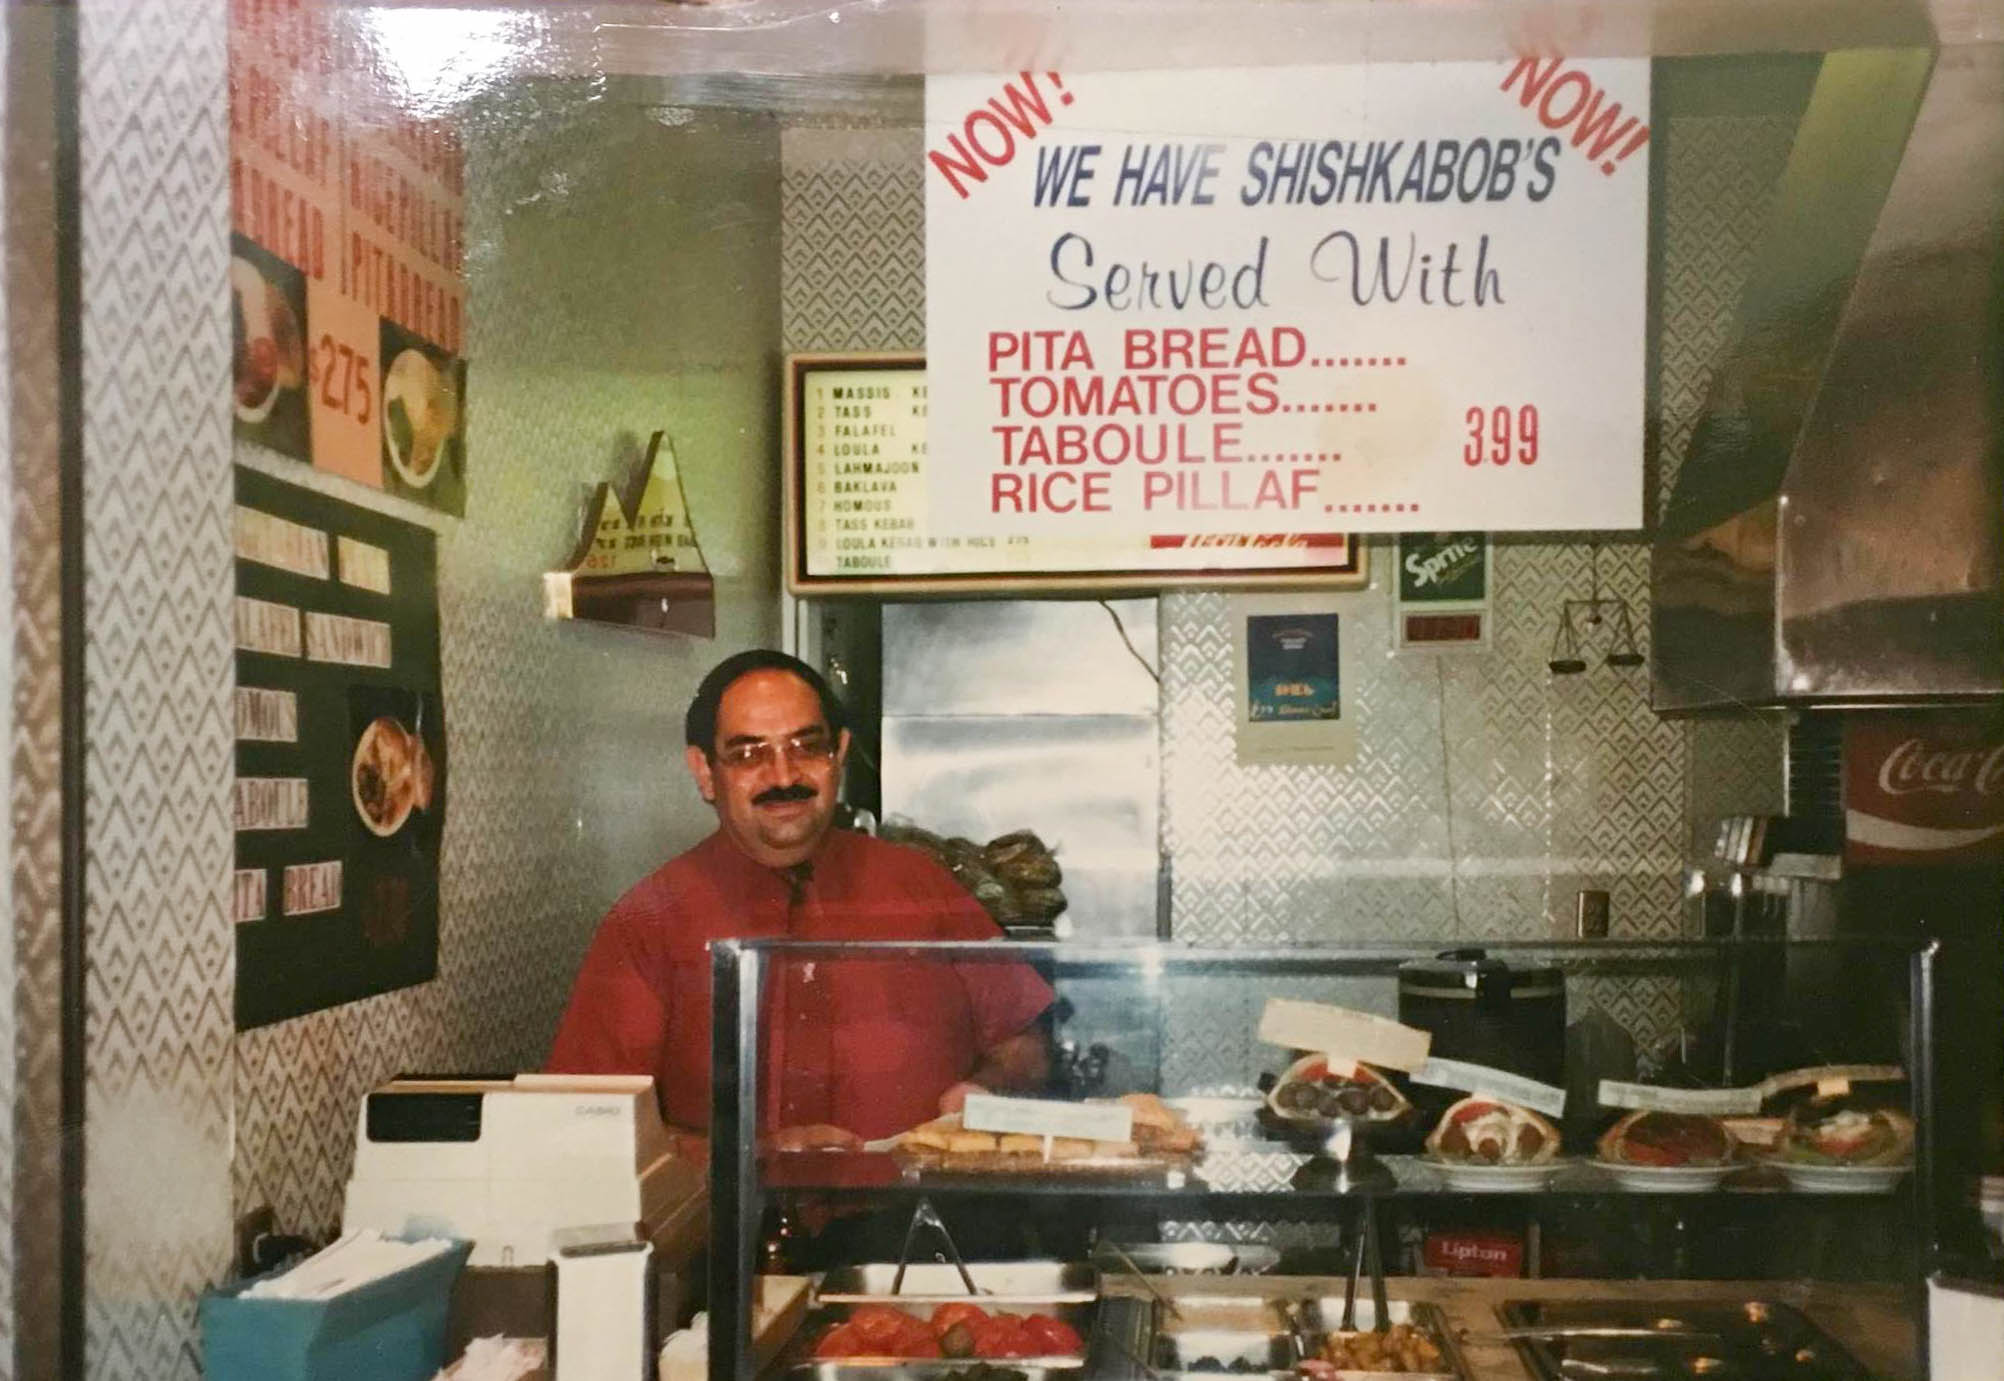 A man with a large mustache stands behind a small counter in a red shirt, serving falafel sandwiches and more.